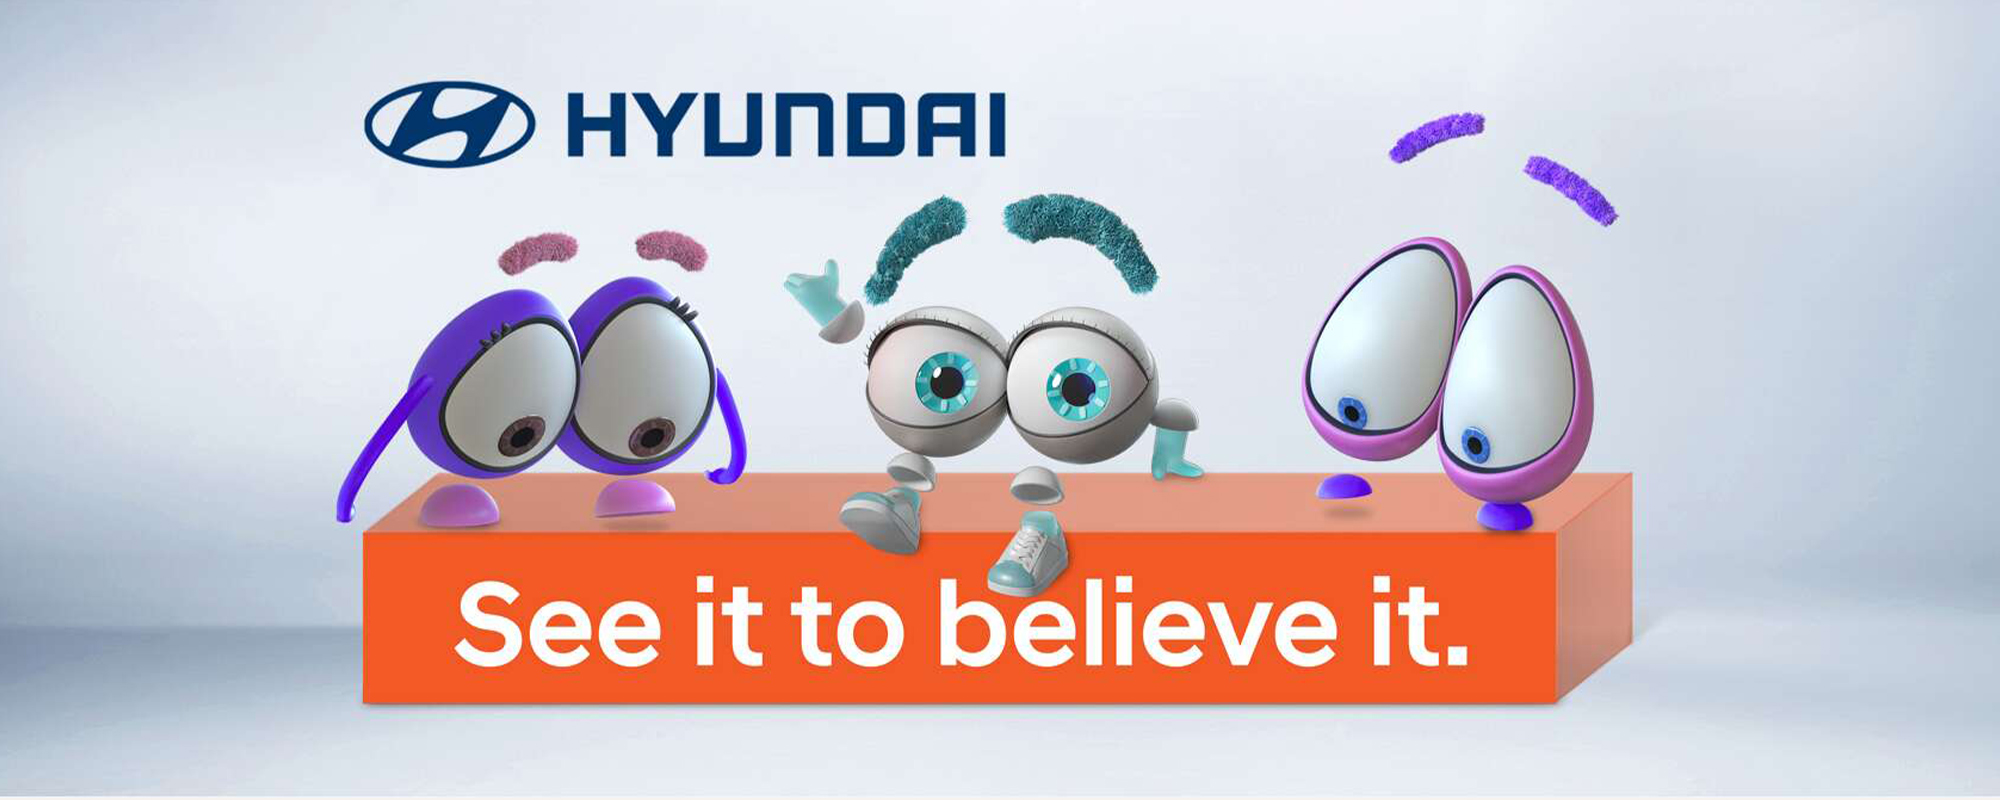 Hyundai. See it to believe it in our Offers section.